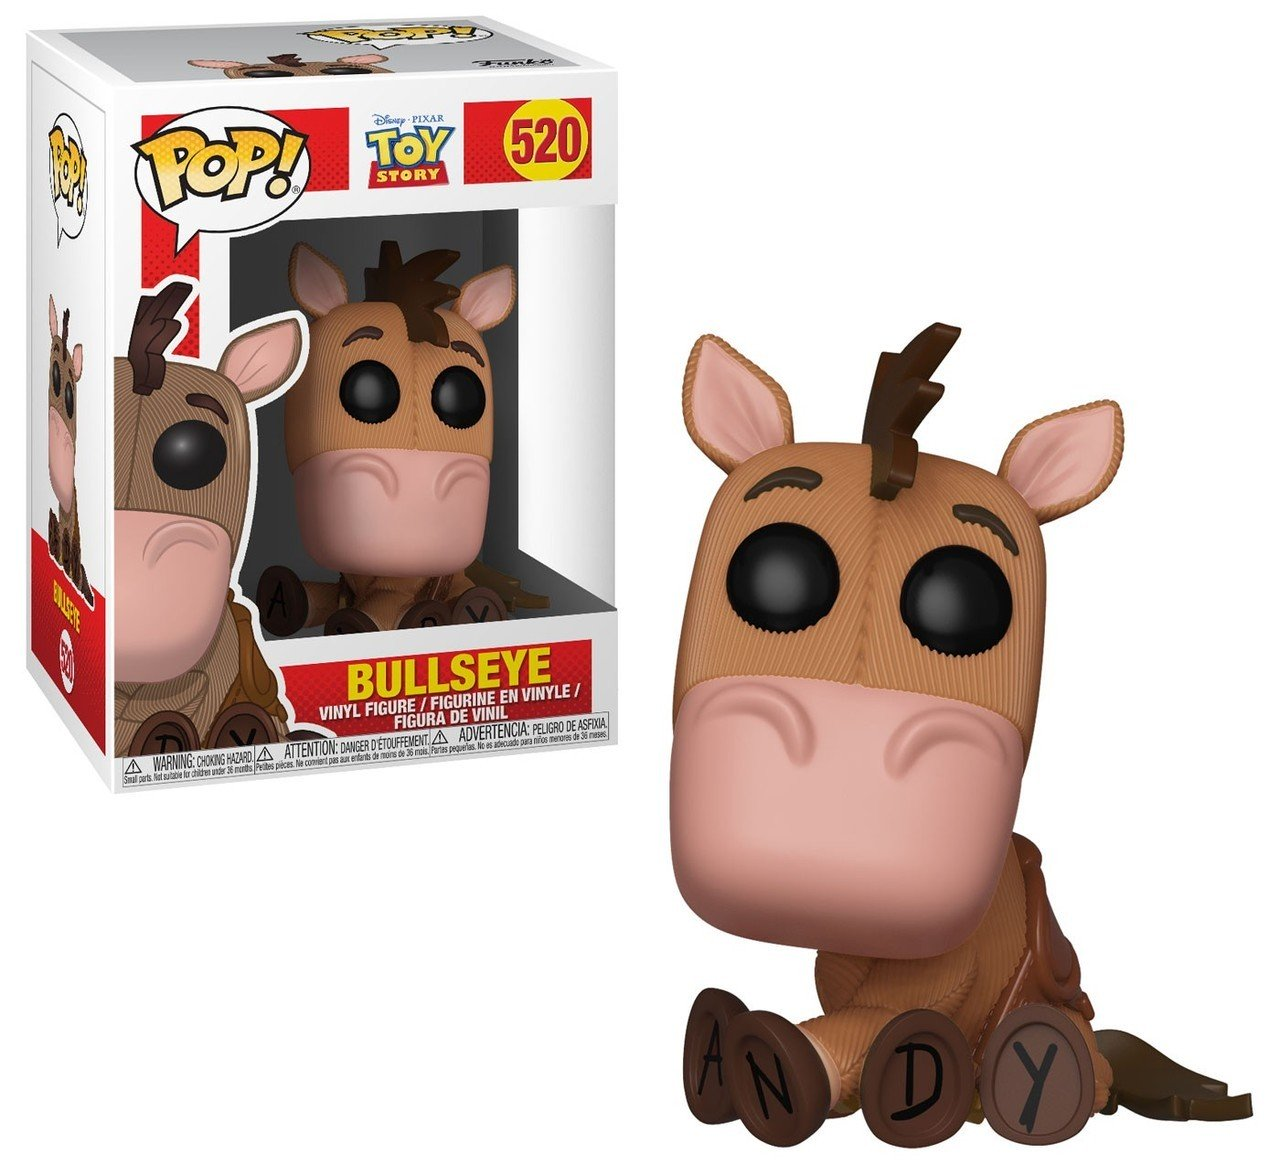 Funko pop disney toy story bullseye